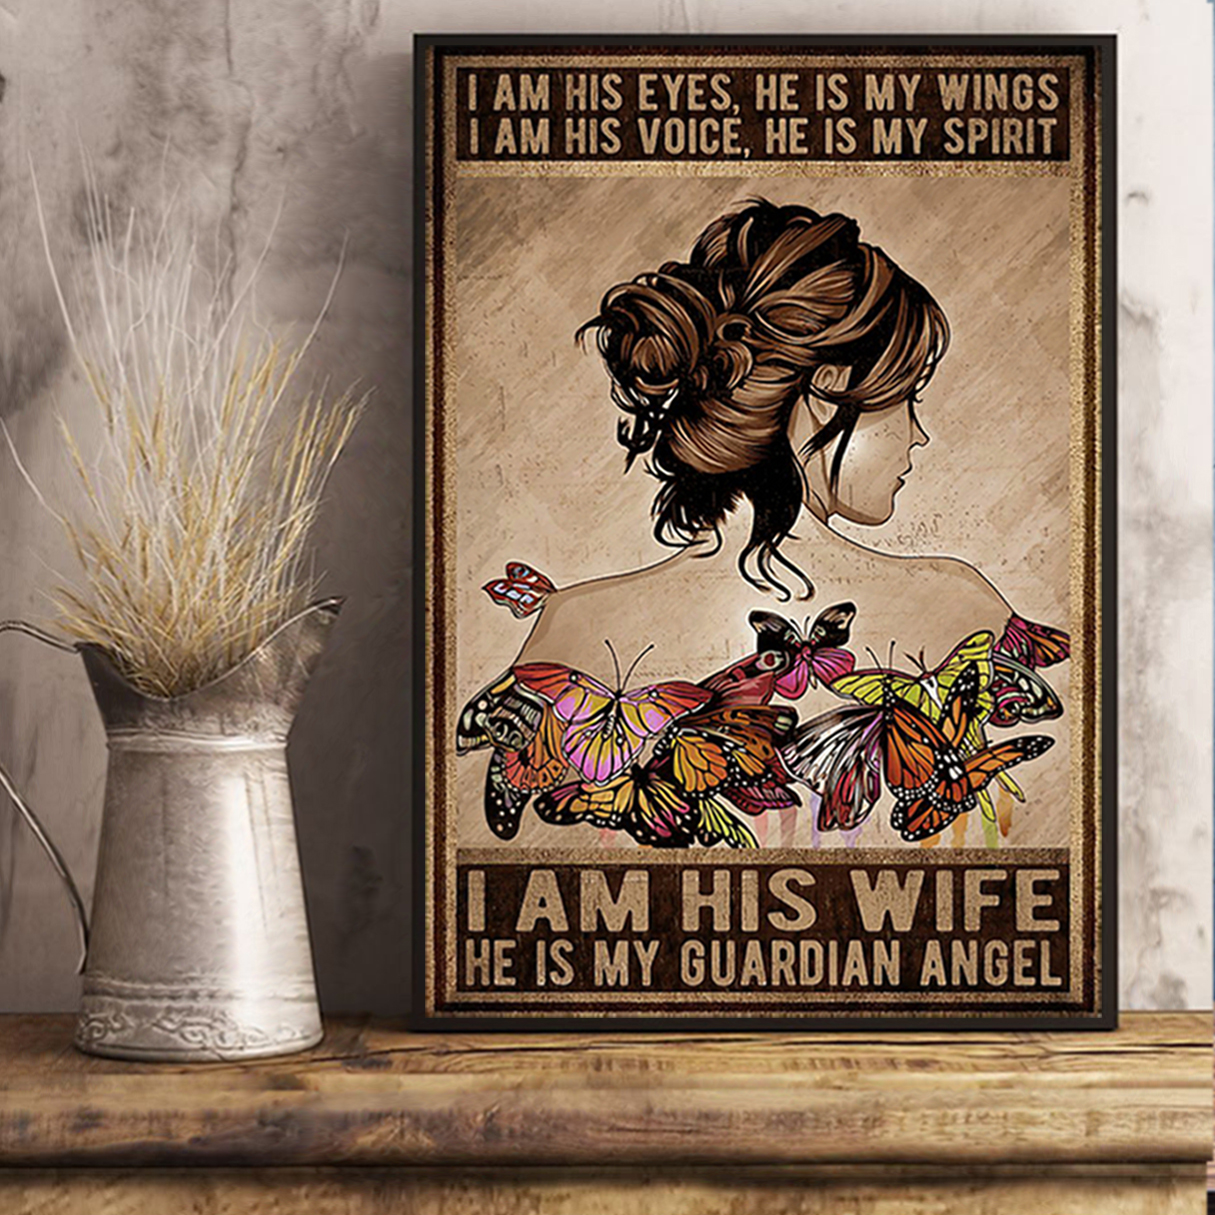 Butterfly girl I am his eyes he is my wings poster A3